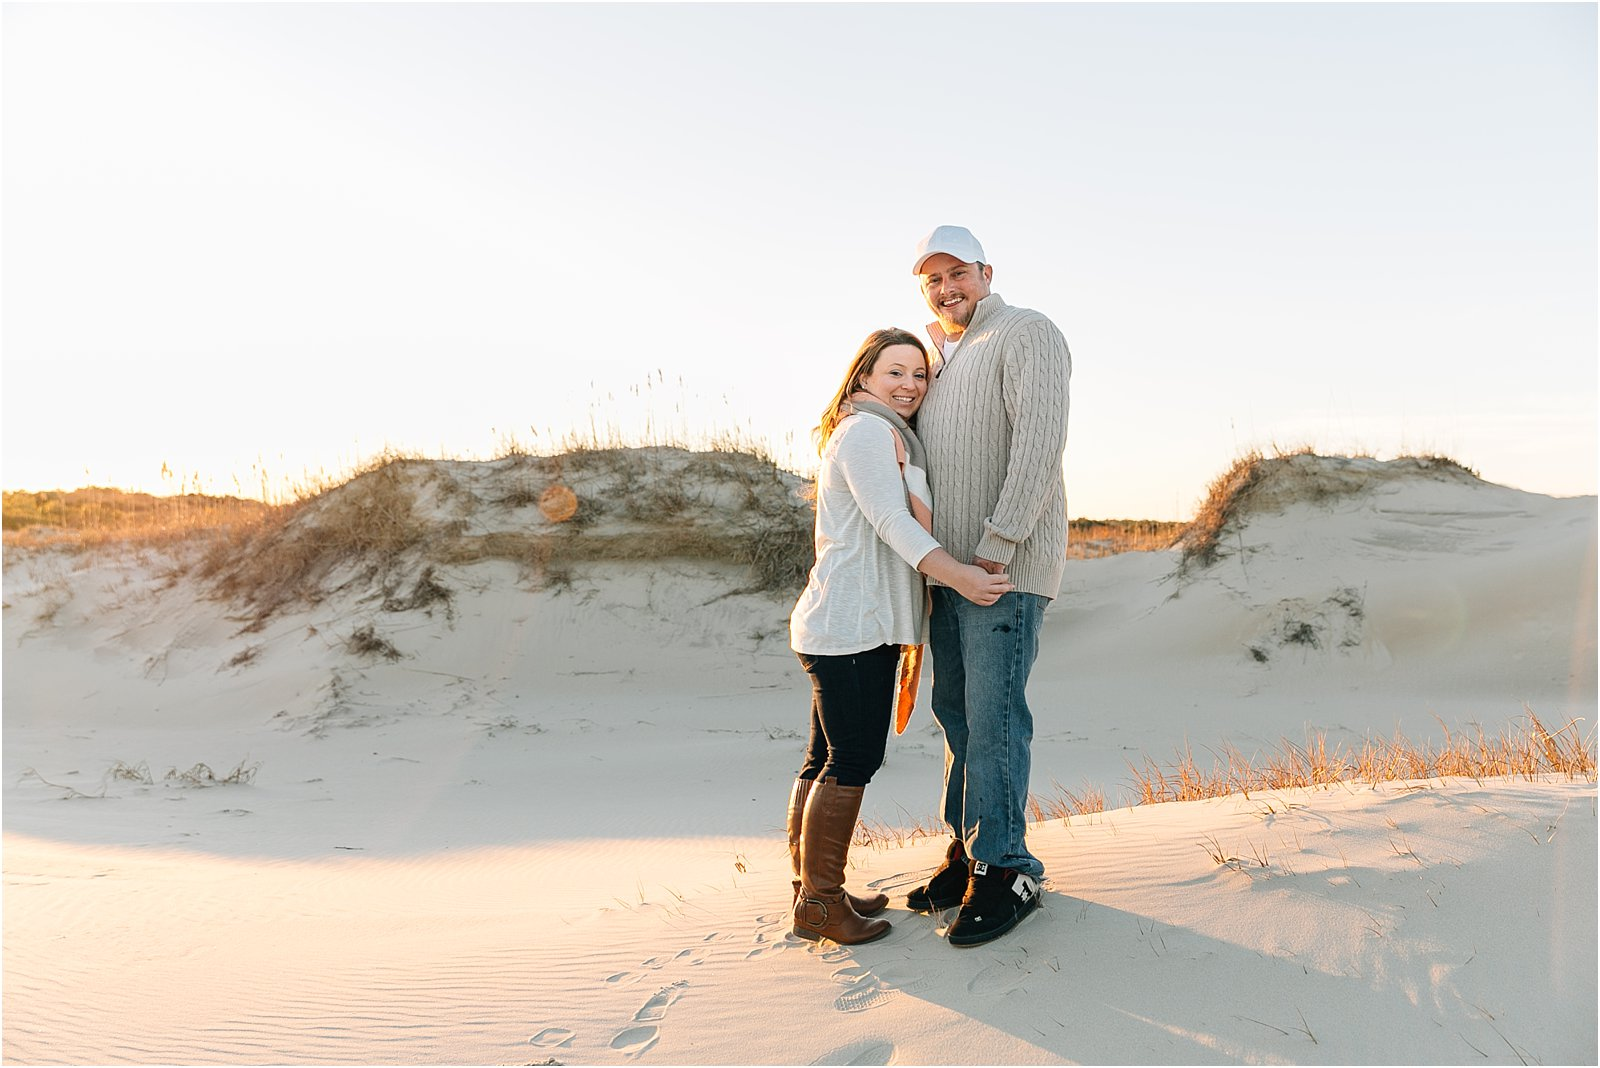 jessica_ryan_photography_pumpkin_patch_engagement_portraits_fall_october_engagements_virginia_beach_chesapeake_0324